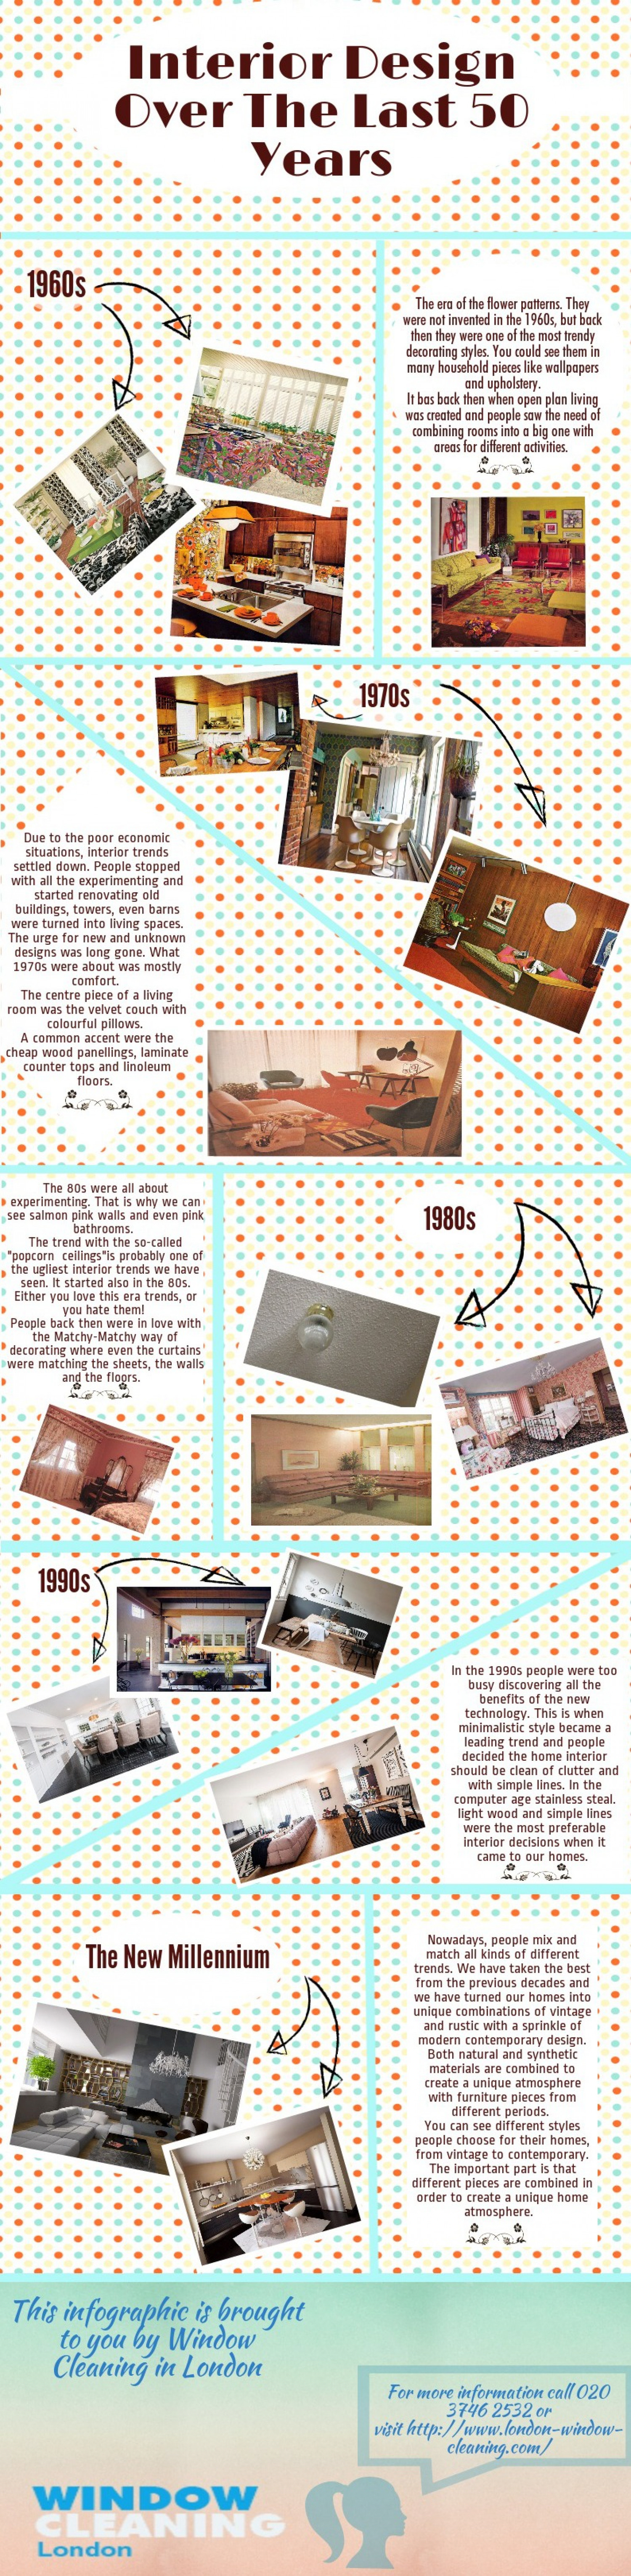 Interior Design Over The Last 50 Years Infographic